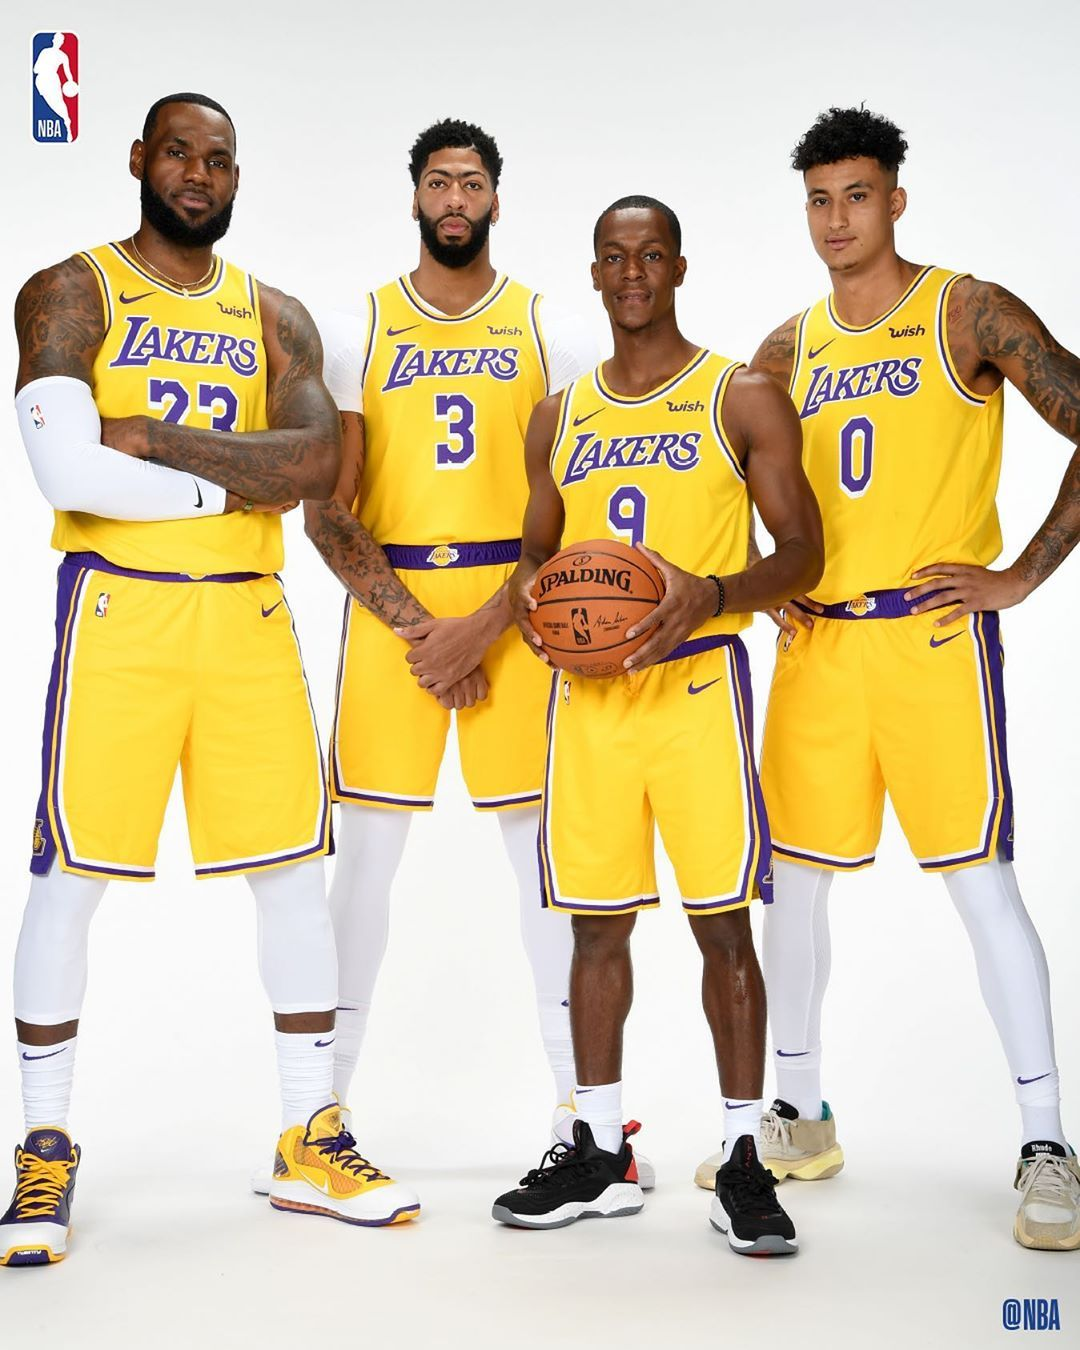 Nba What Are You Most Looking Forward To From The Lakers This Upcoming Season Basketball Big4 Bigfour Los Angeles Lakers Nba Nba Trades